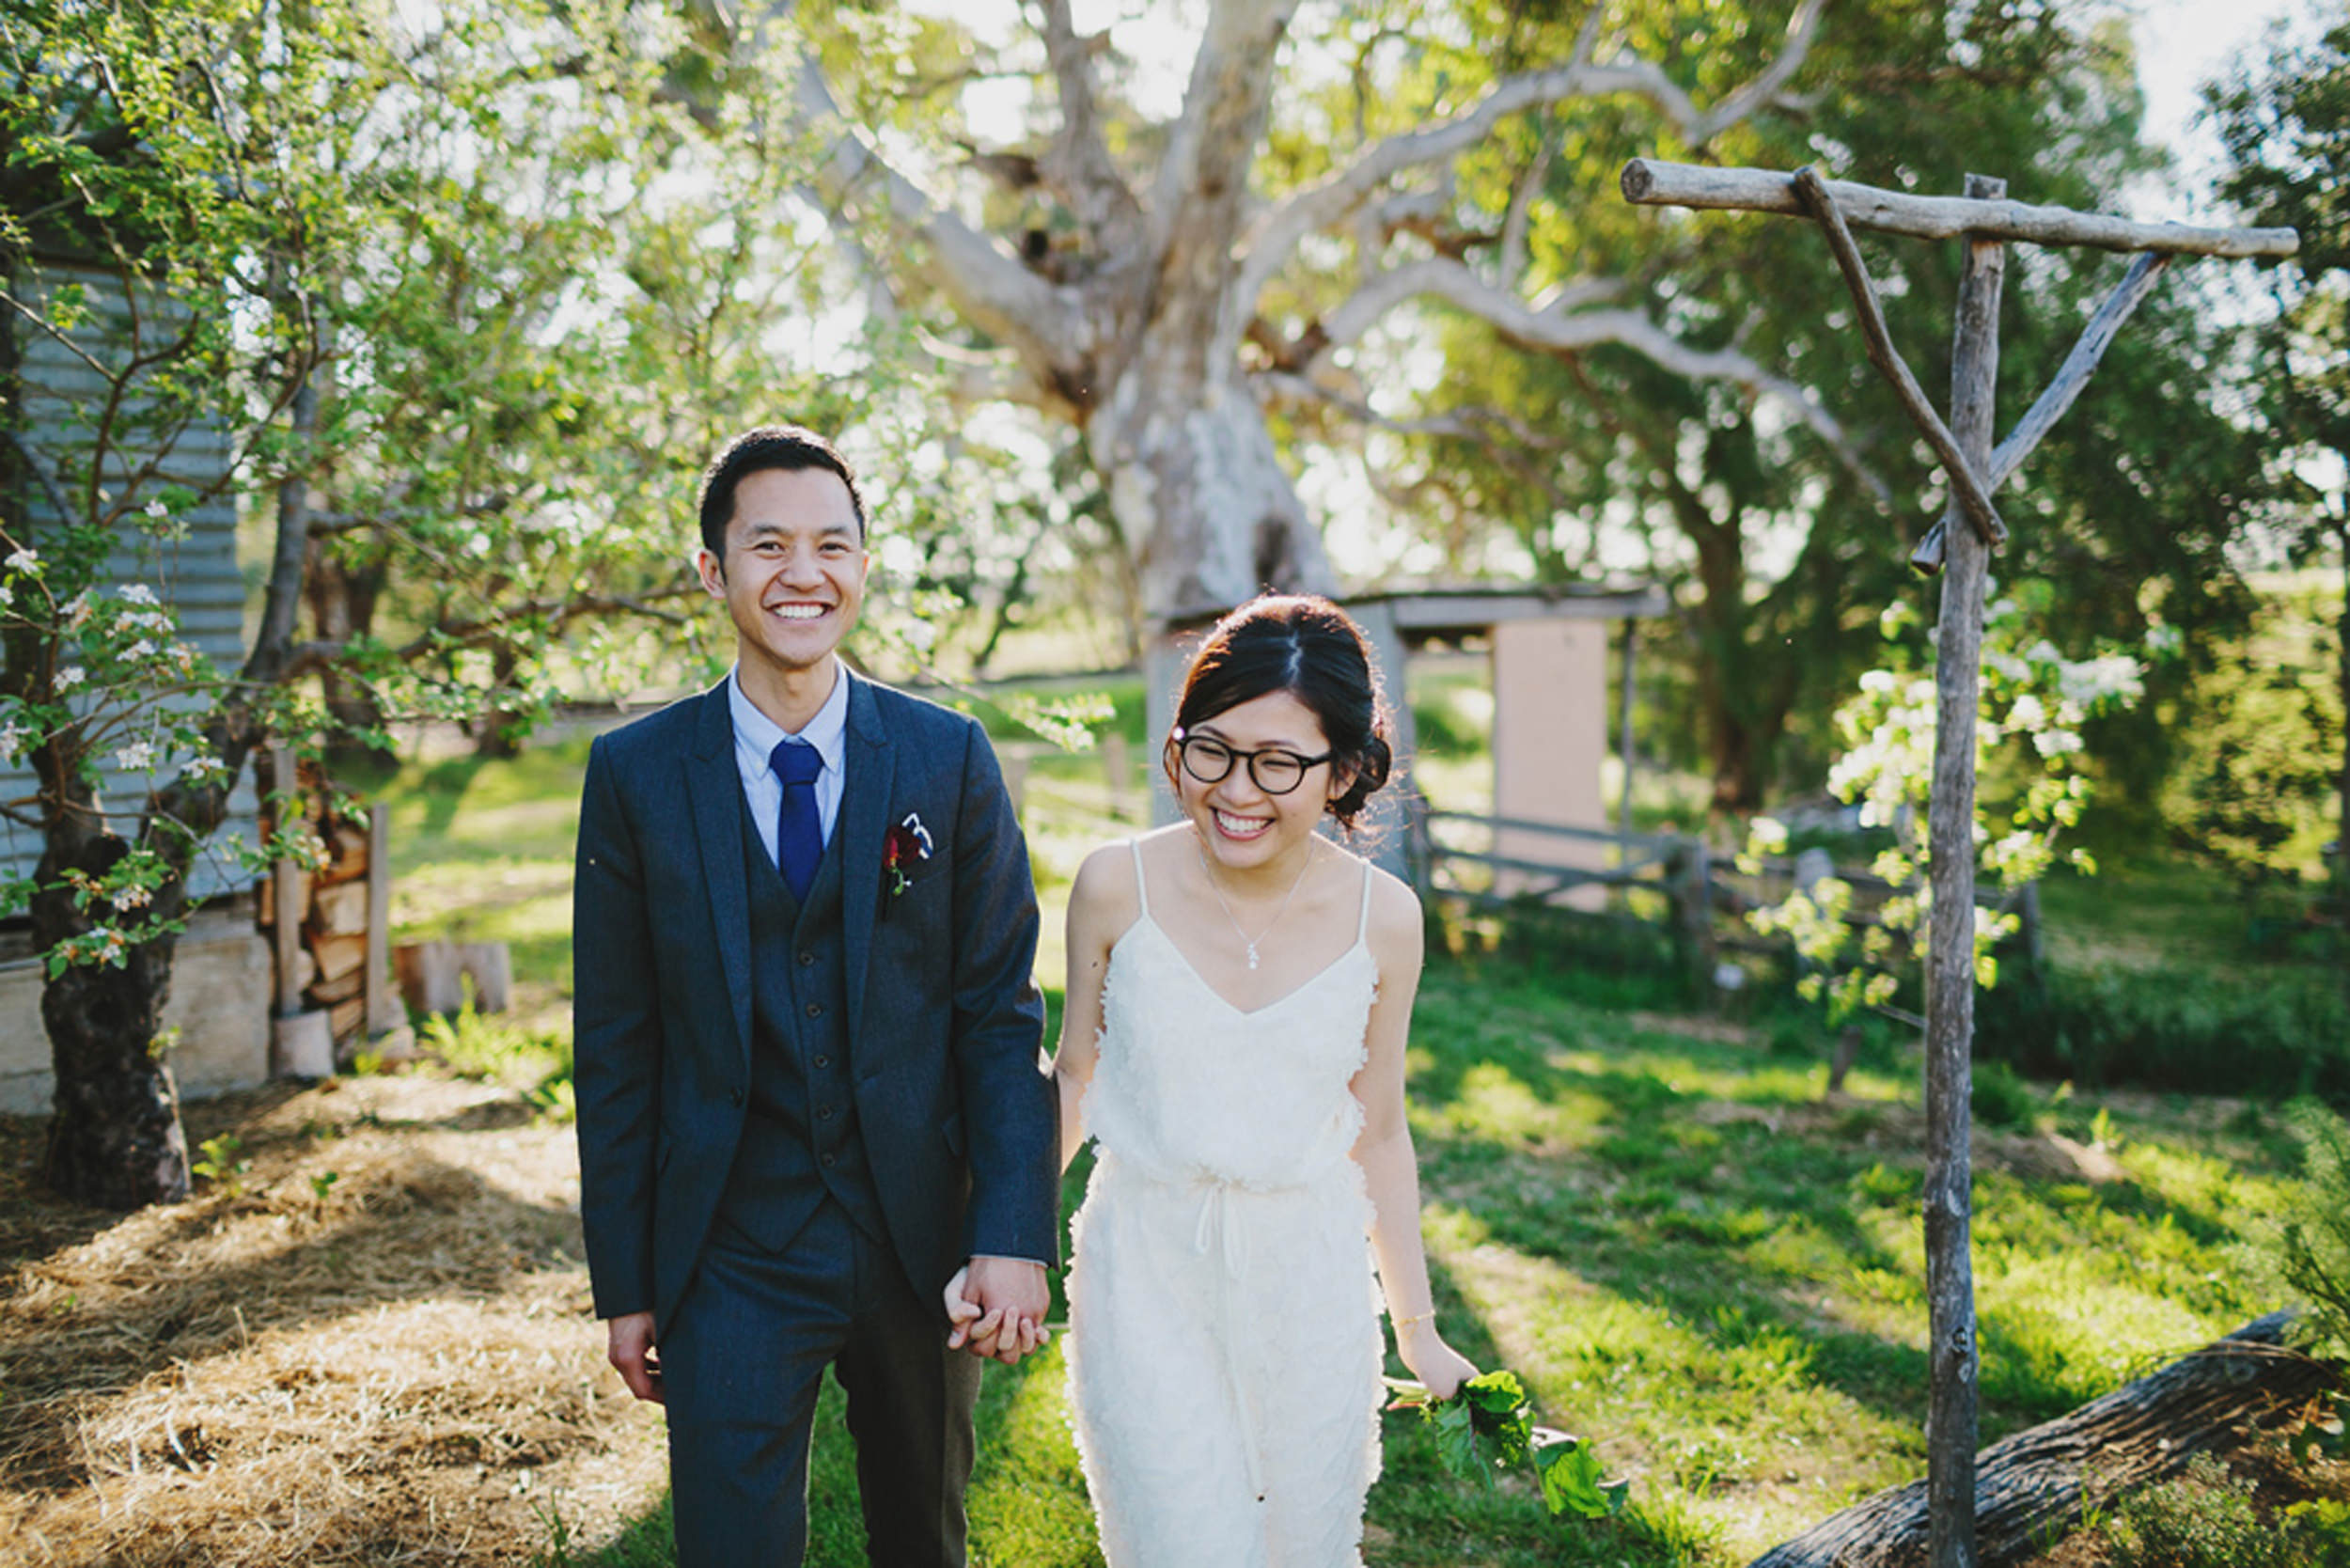 Butterland_Wedding_Anthony_Rachel01.JPG